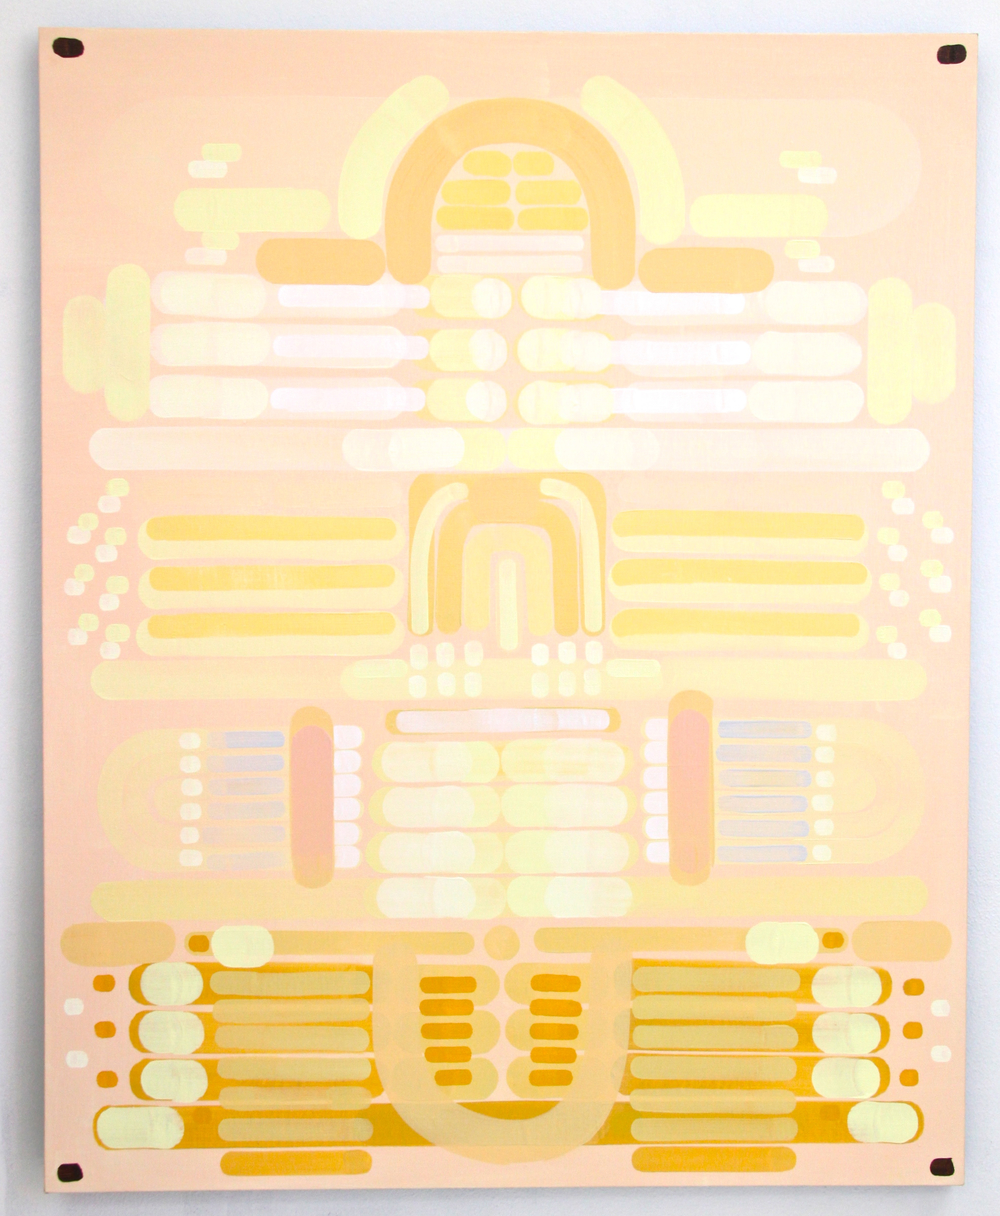 Deco Deco oil on Indian linen 60 x 48 inches 2014